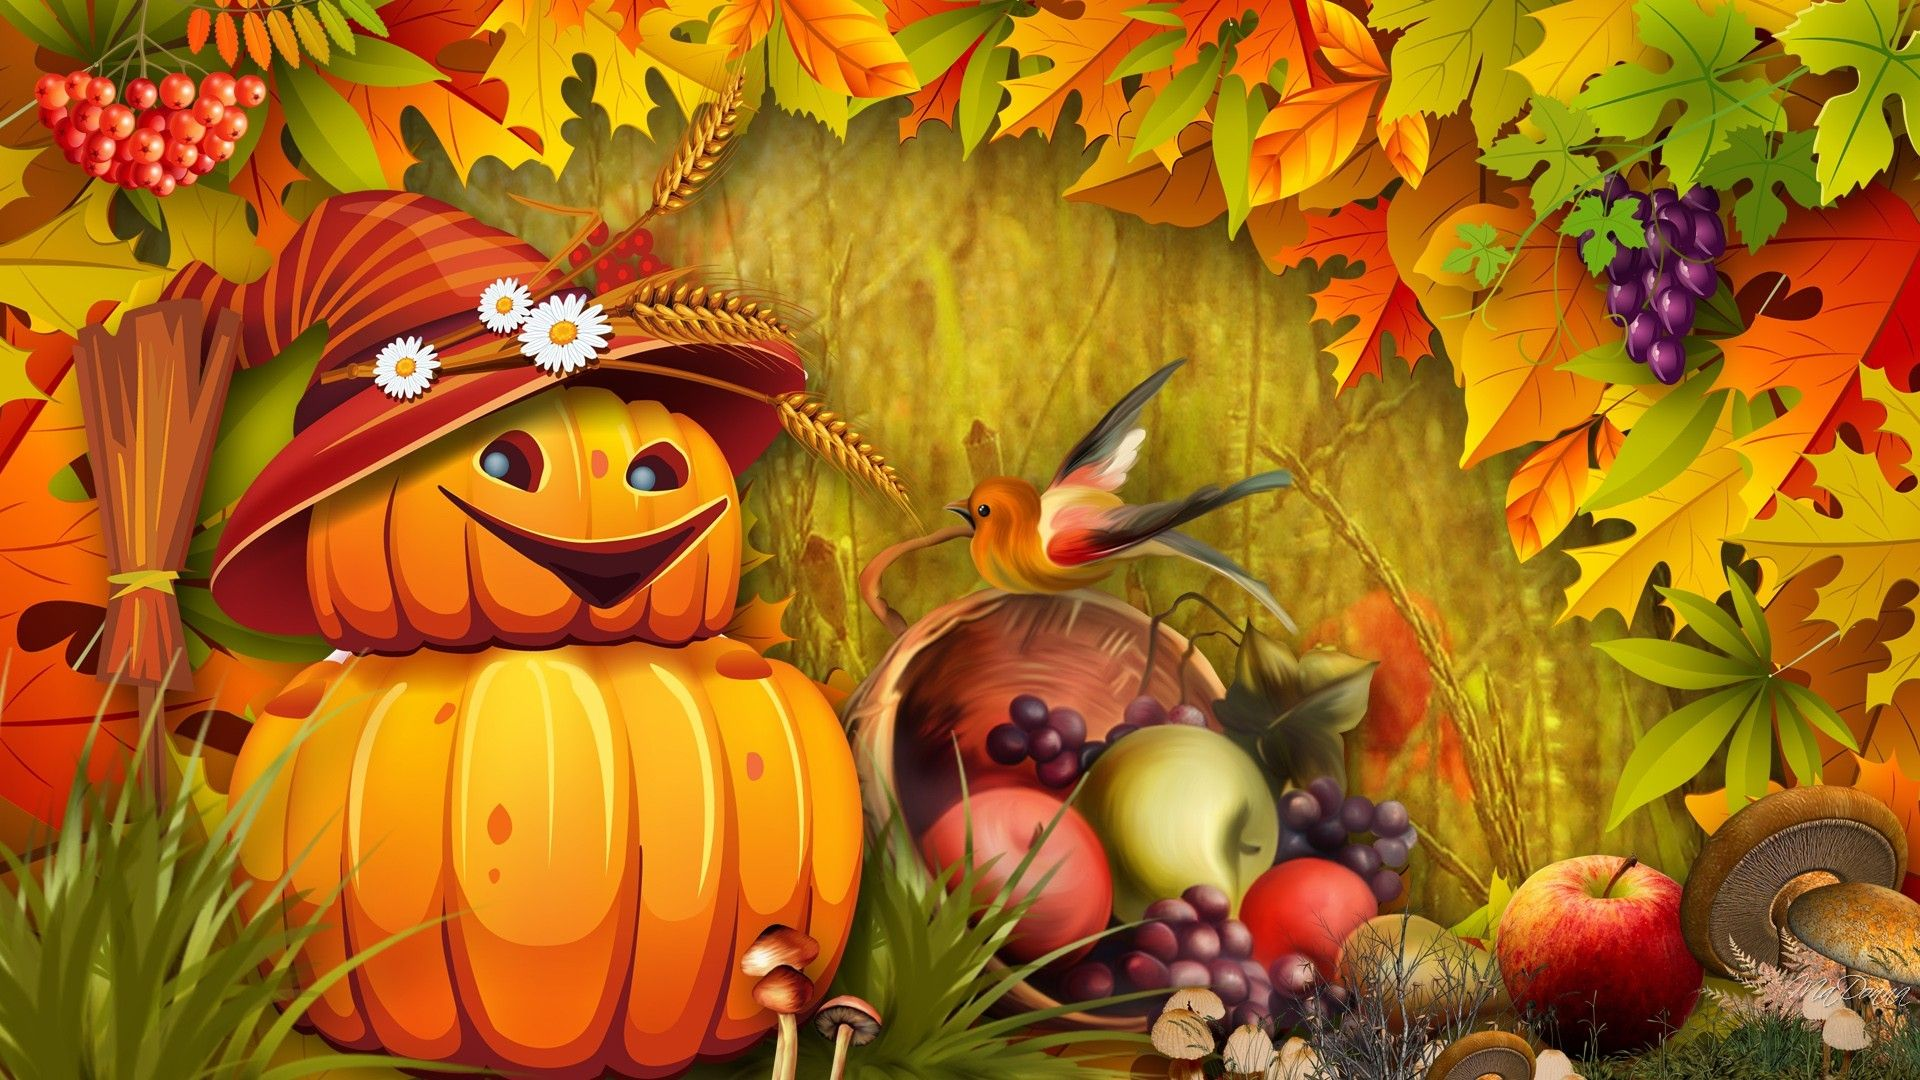 1920x1080 autumn wallpaper with pumpkins Fall Leaves